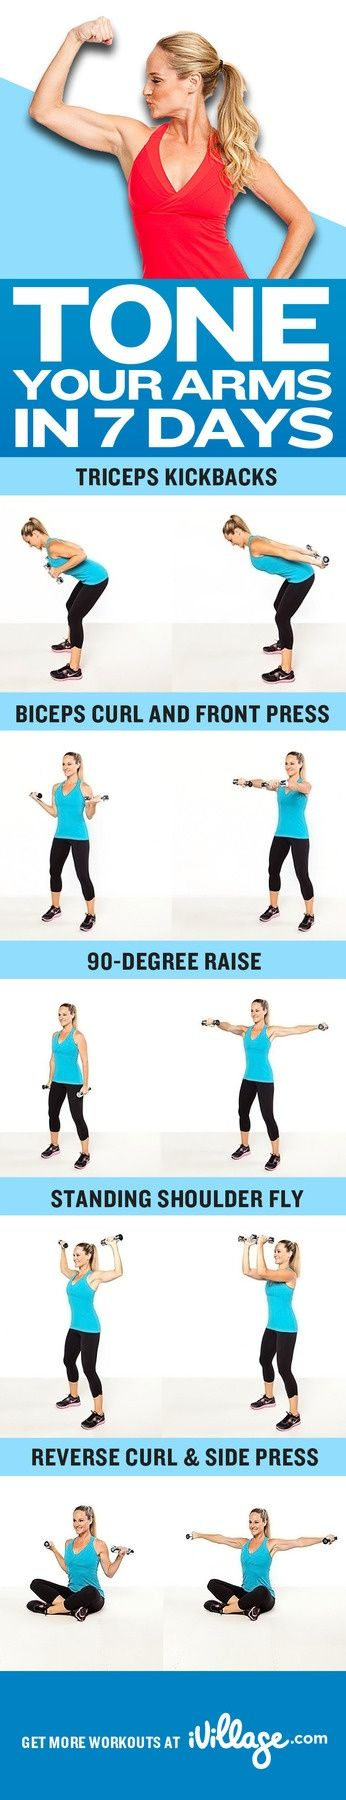 Tone your arms in seven days